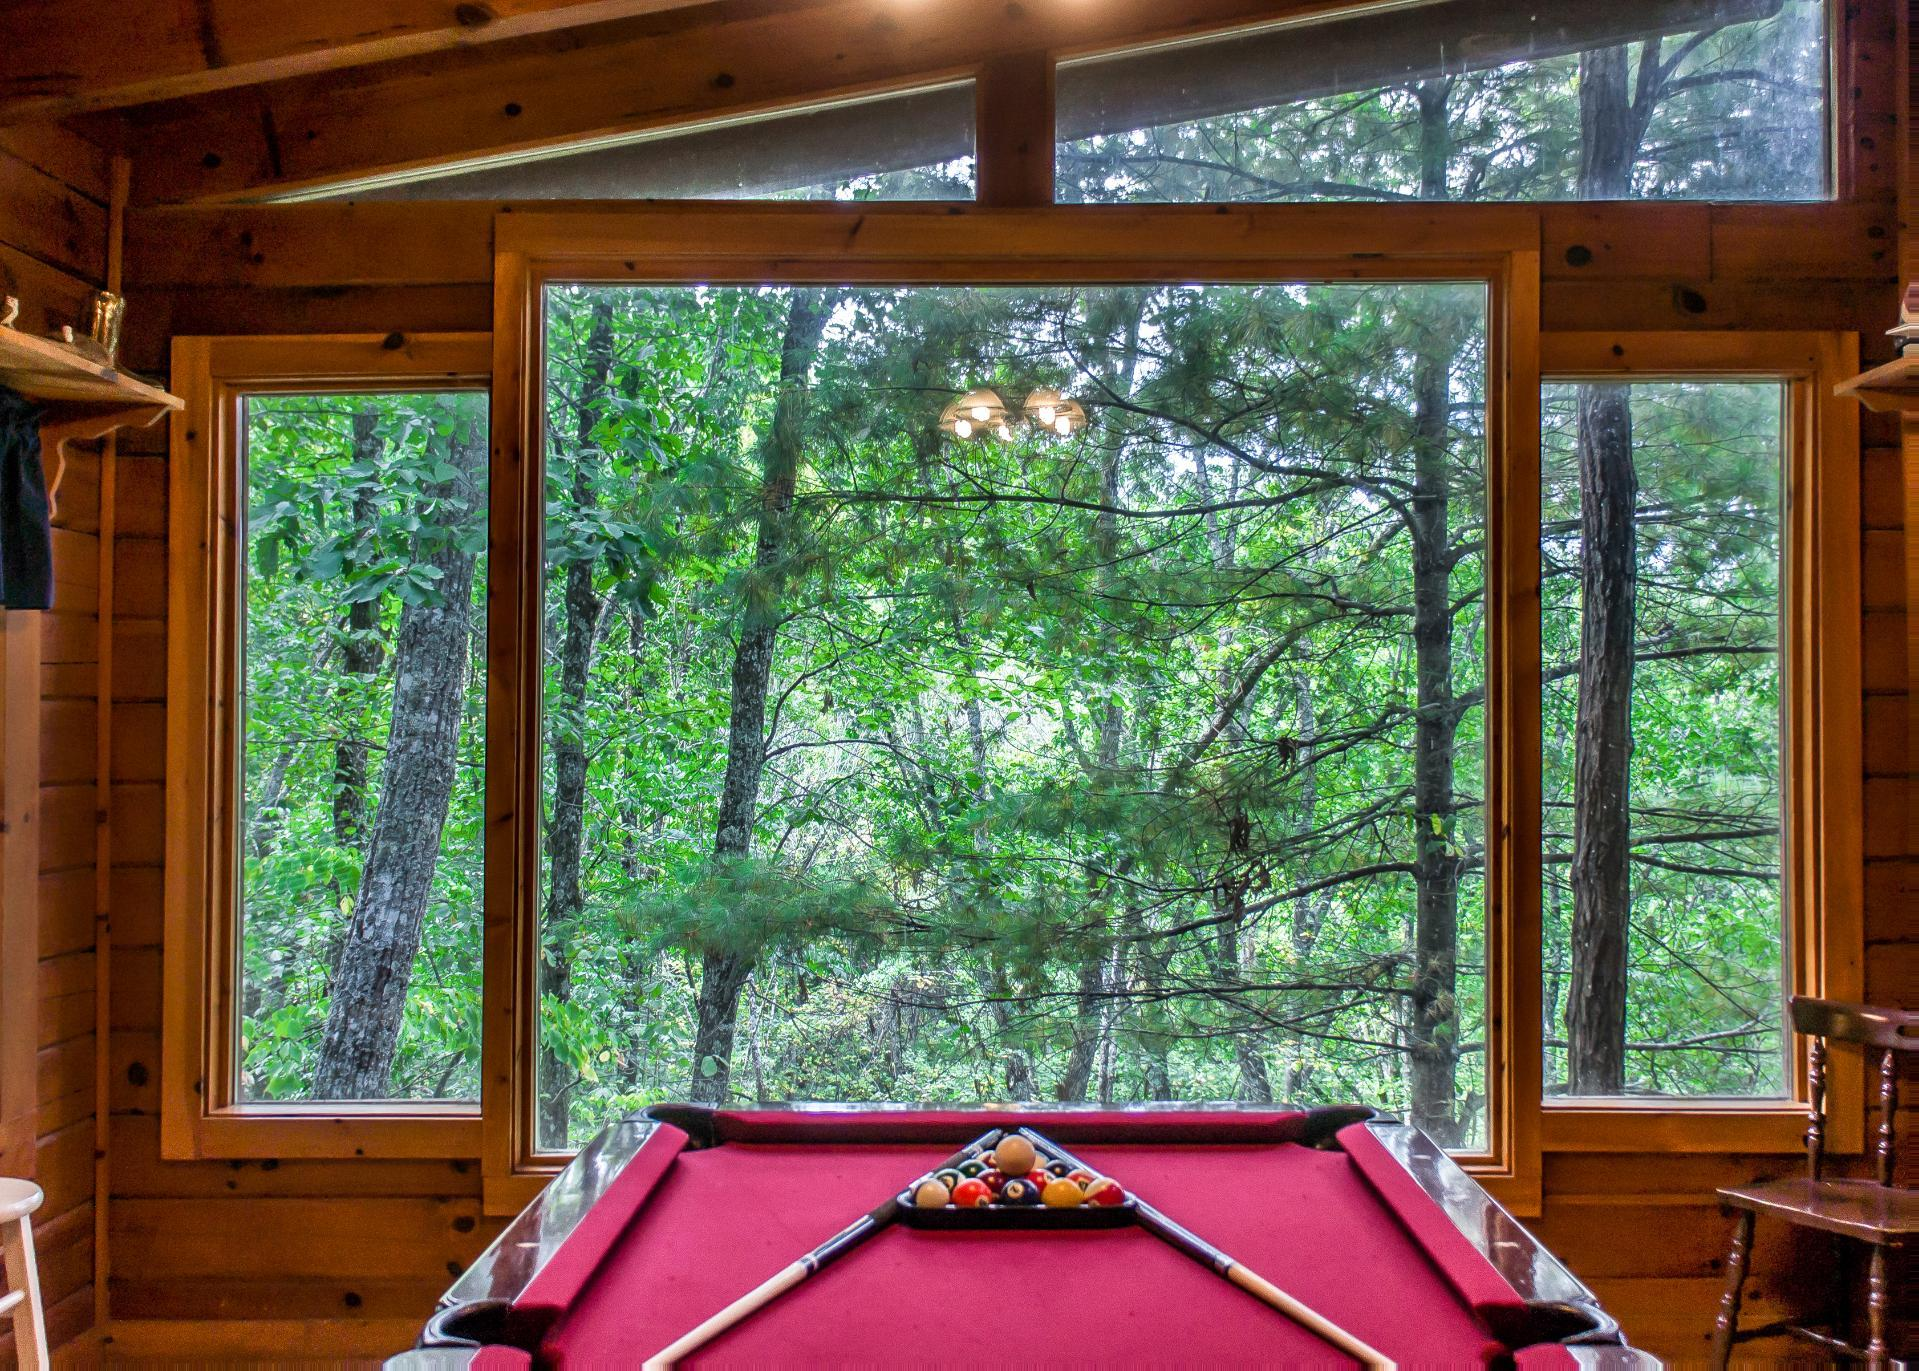 Property Image 2 - Cozy Secluded Cabin in Forest with Hot Tub